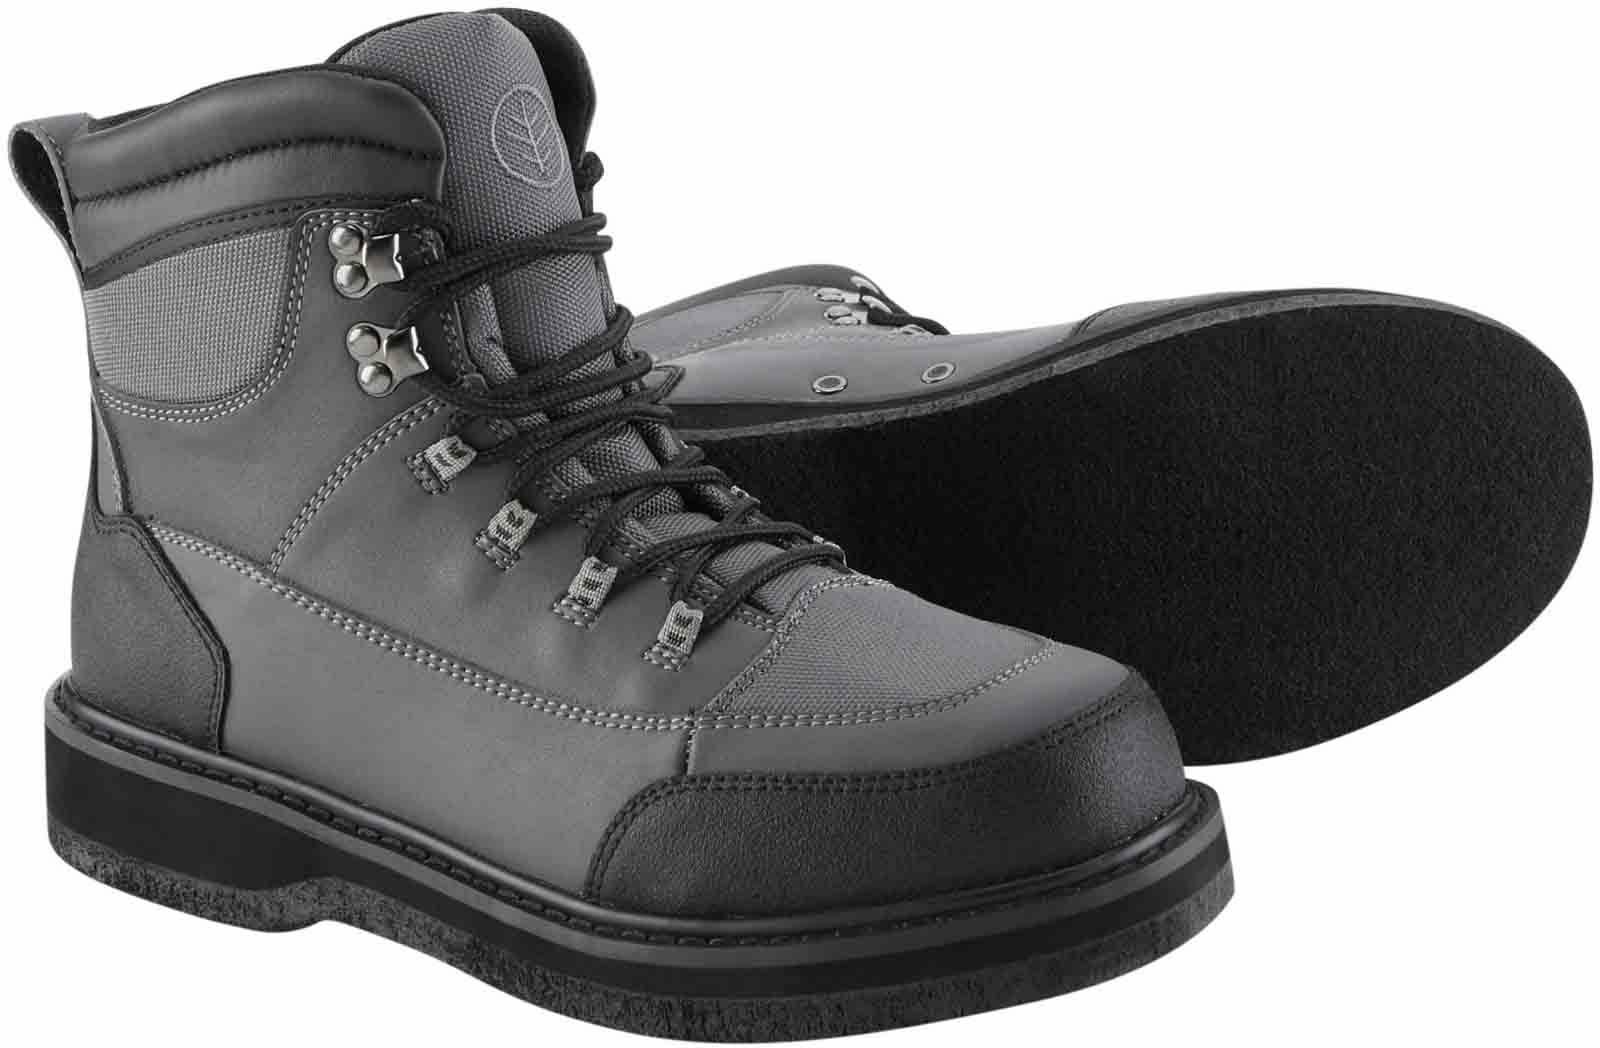 Wychwood New Source Felt Sole Durable Wading Fishing Fishing Wading Stiefel - All Größes d14745